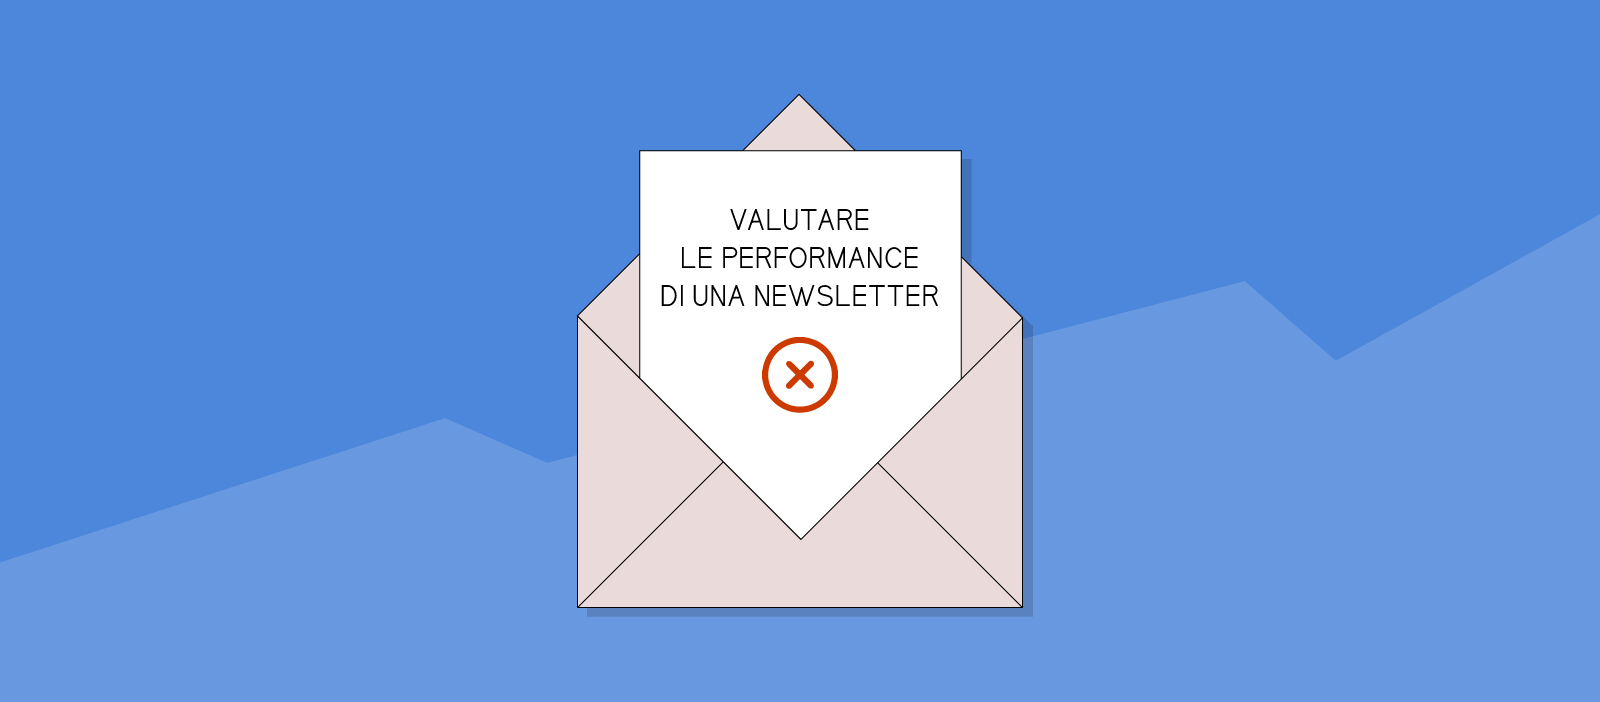 Valutare le performance di una newsletter